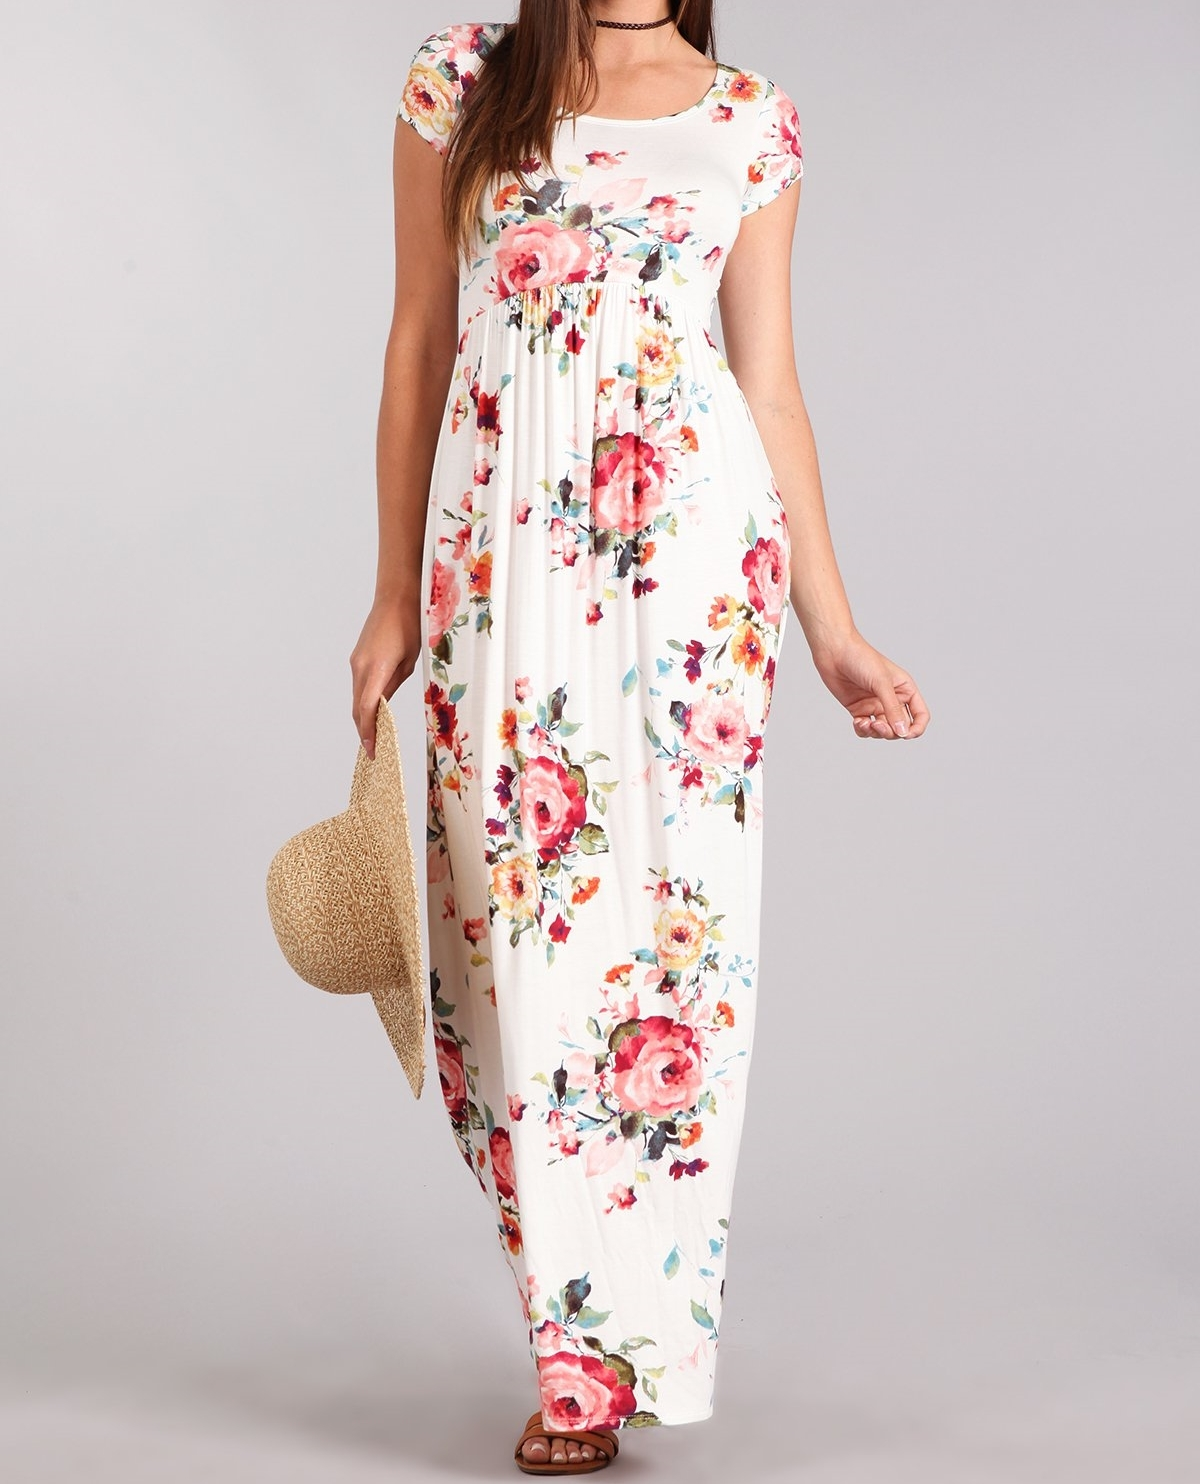 Ivory Floral Maxi Dress, Short Sleeve Maxi Dress, Multicolor Floral Dress